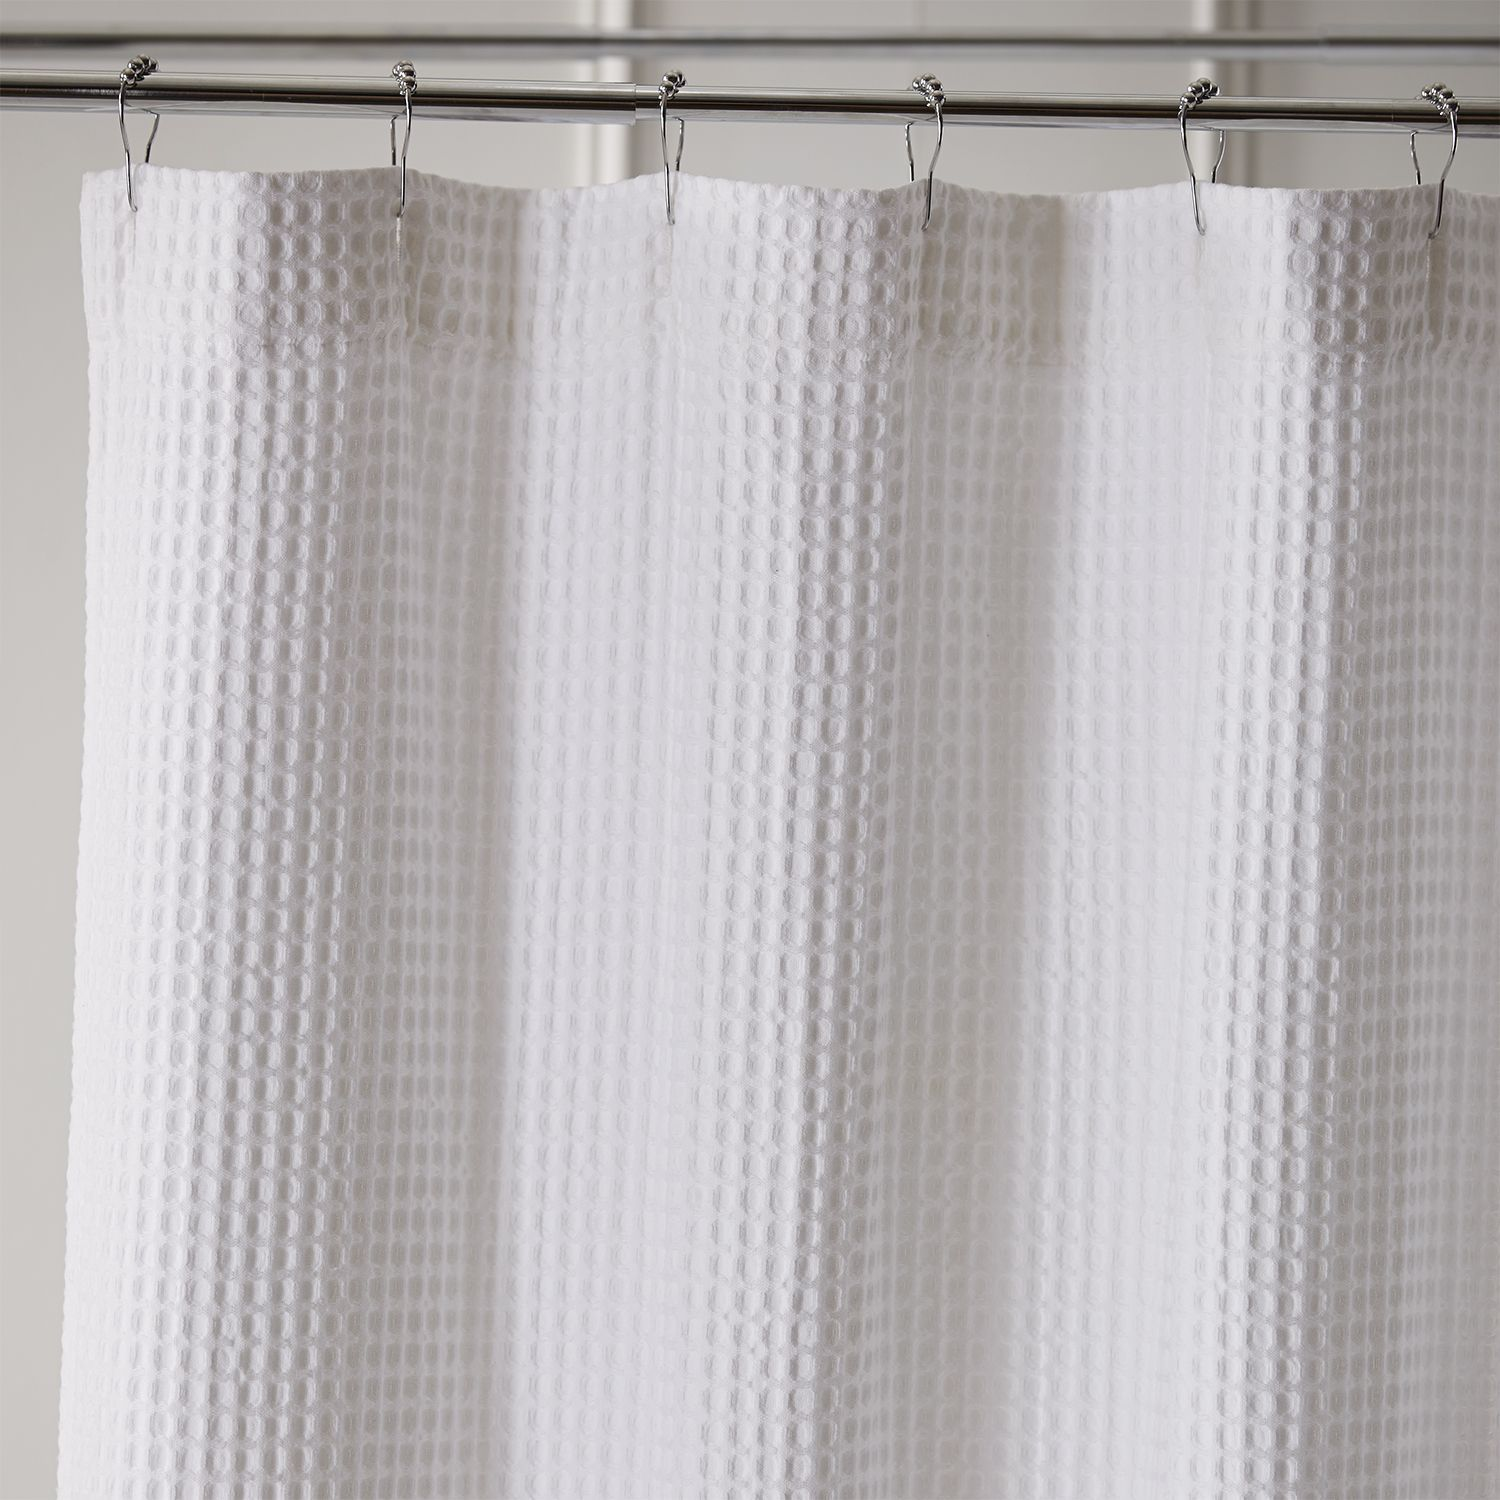 Waffle White Shower Curtain White Shower Bathroom Shower